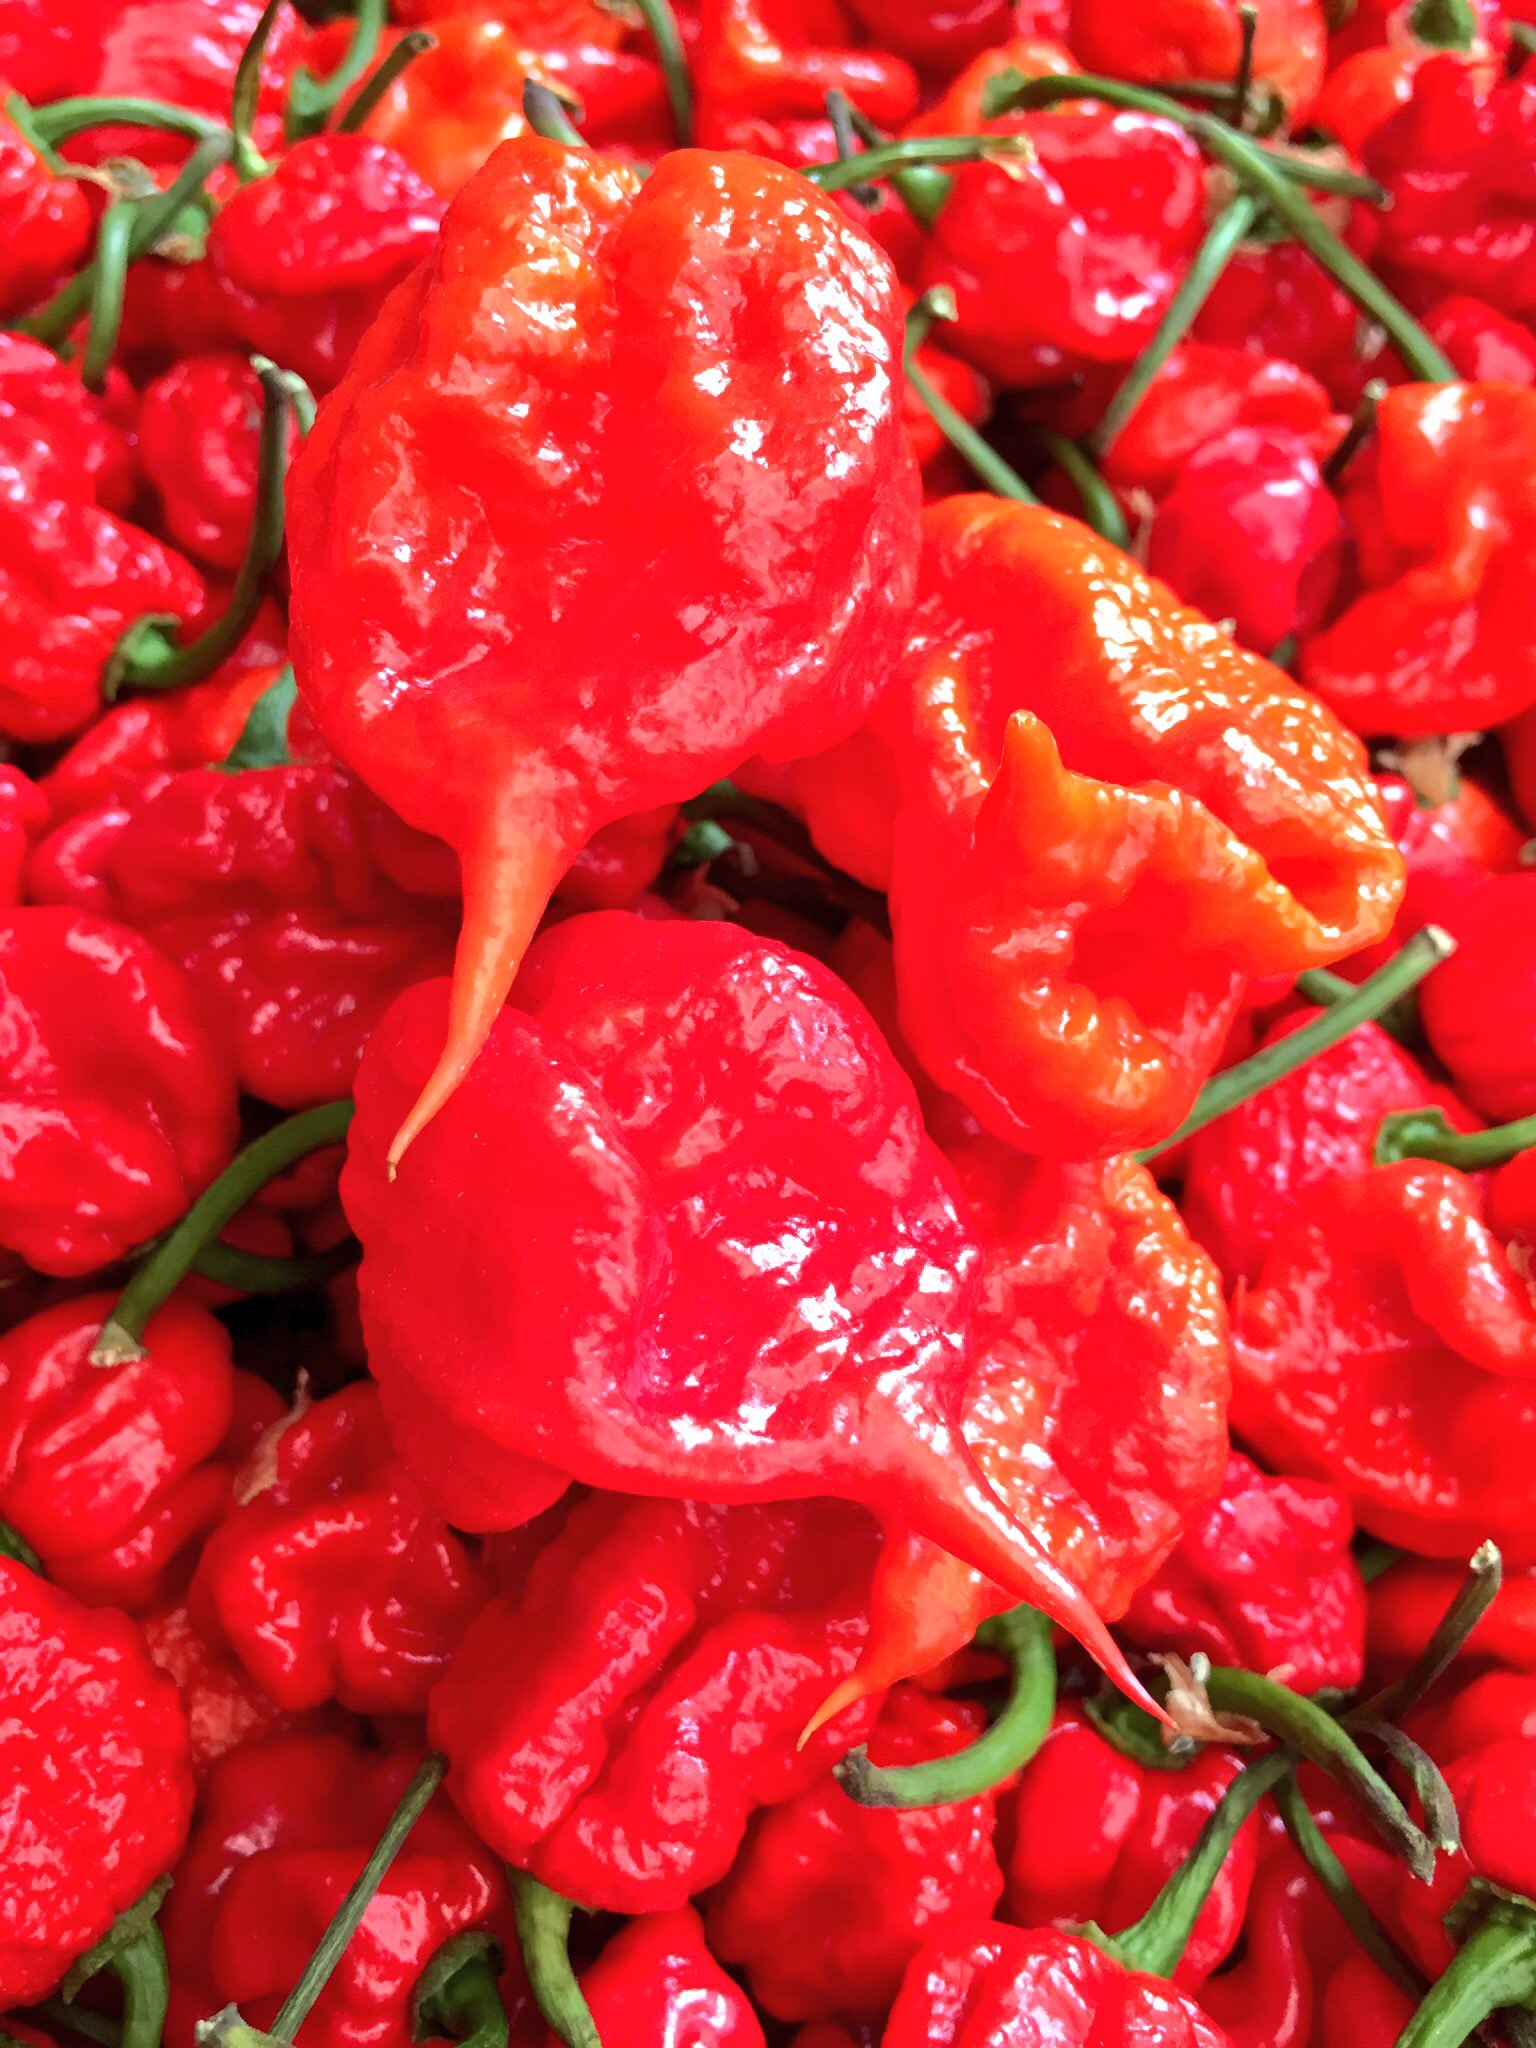 Our beautiful crop of Carolina Reapers - The World's Hottest Chilli